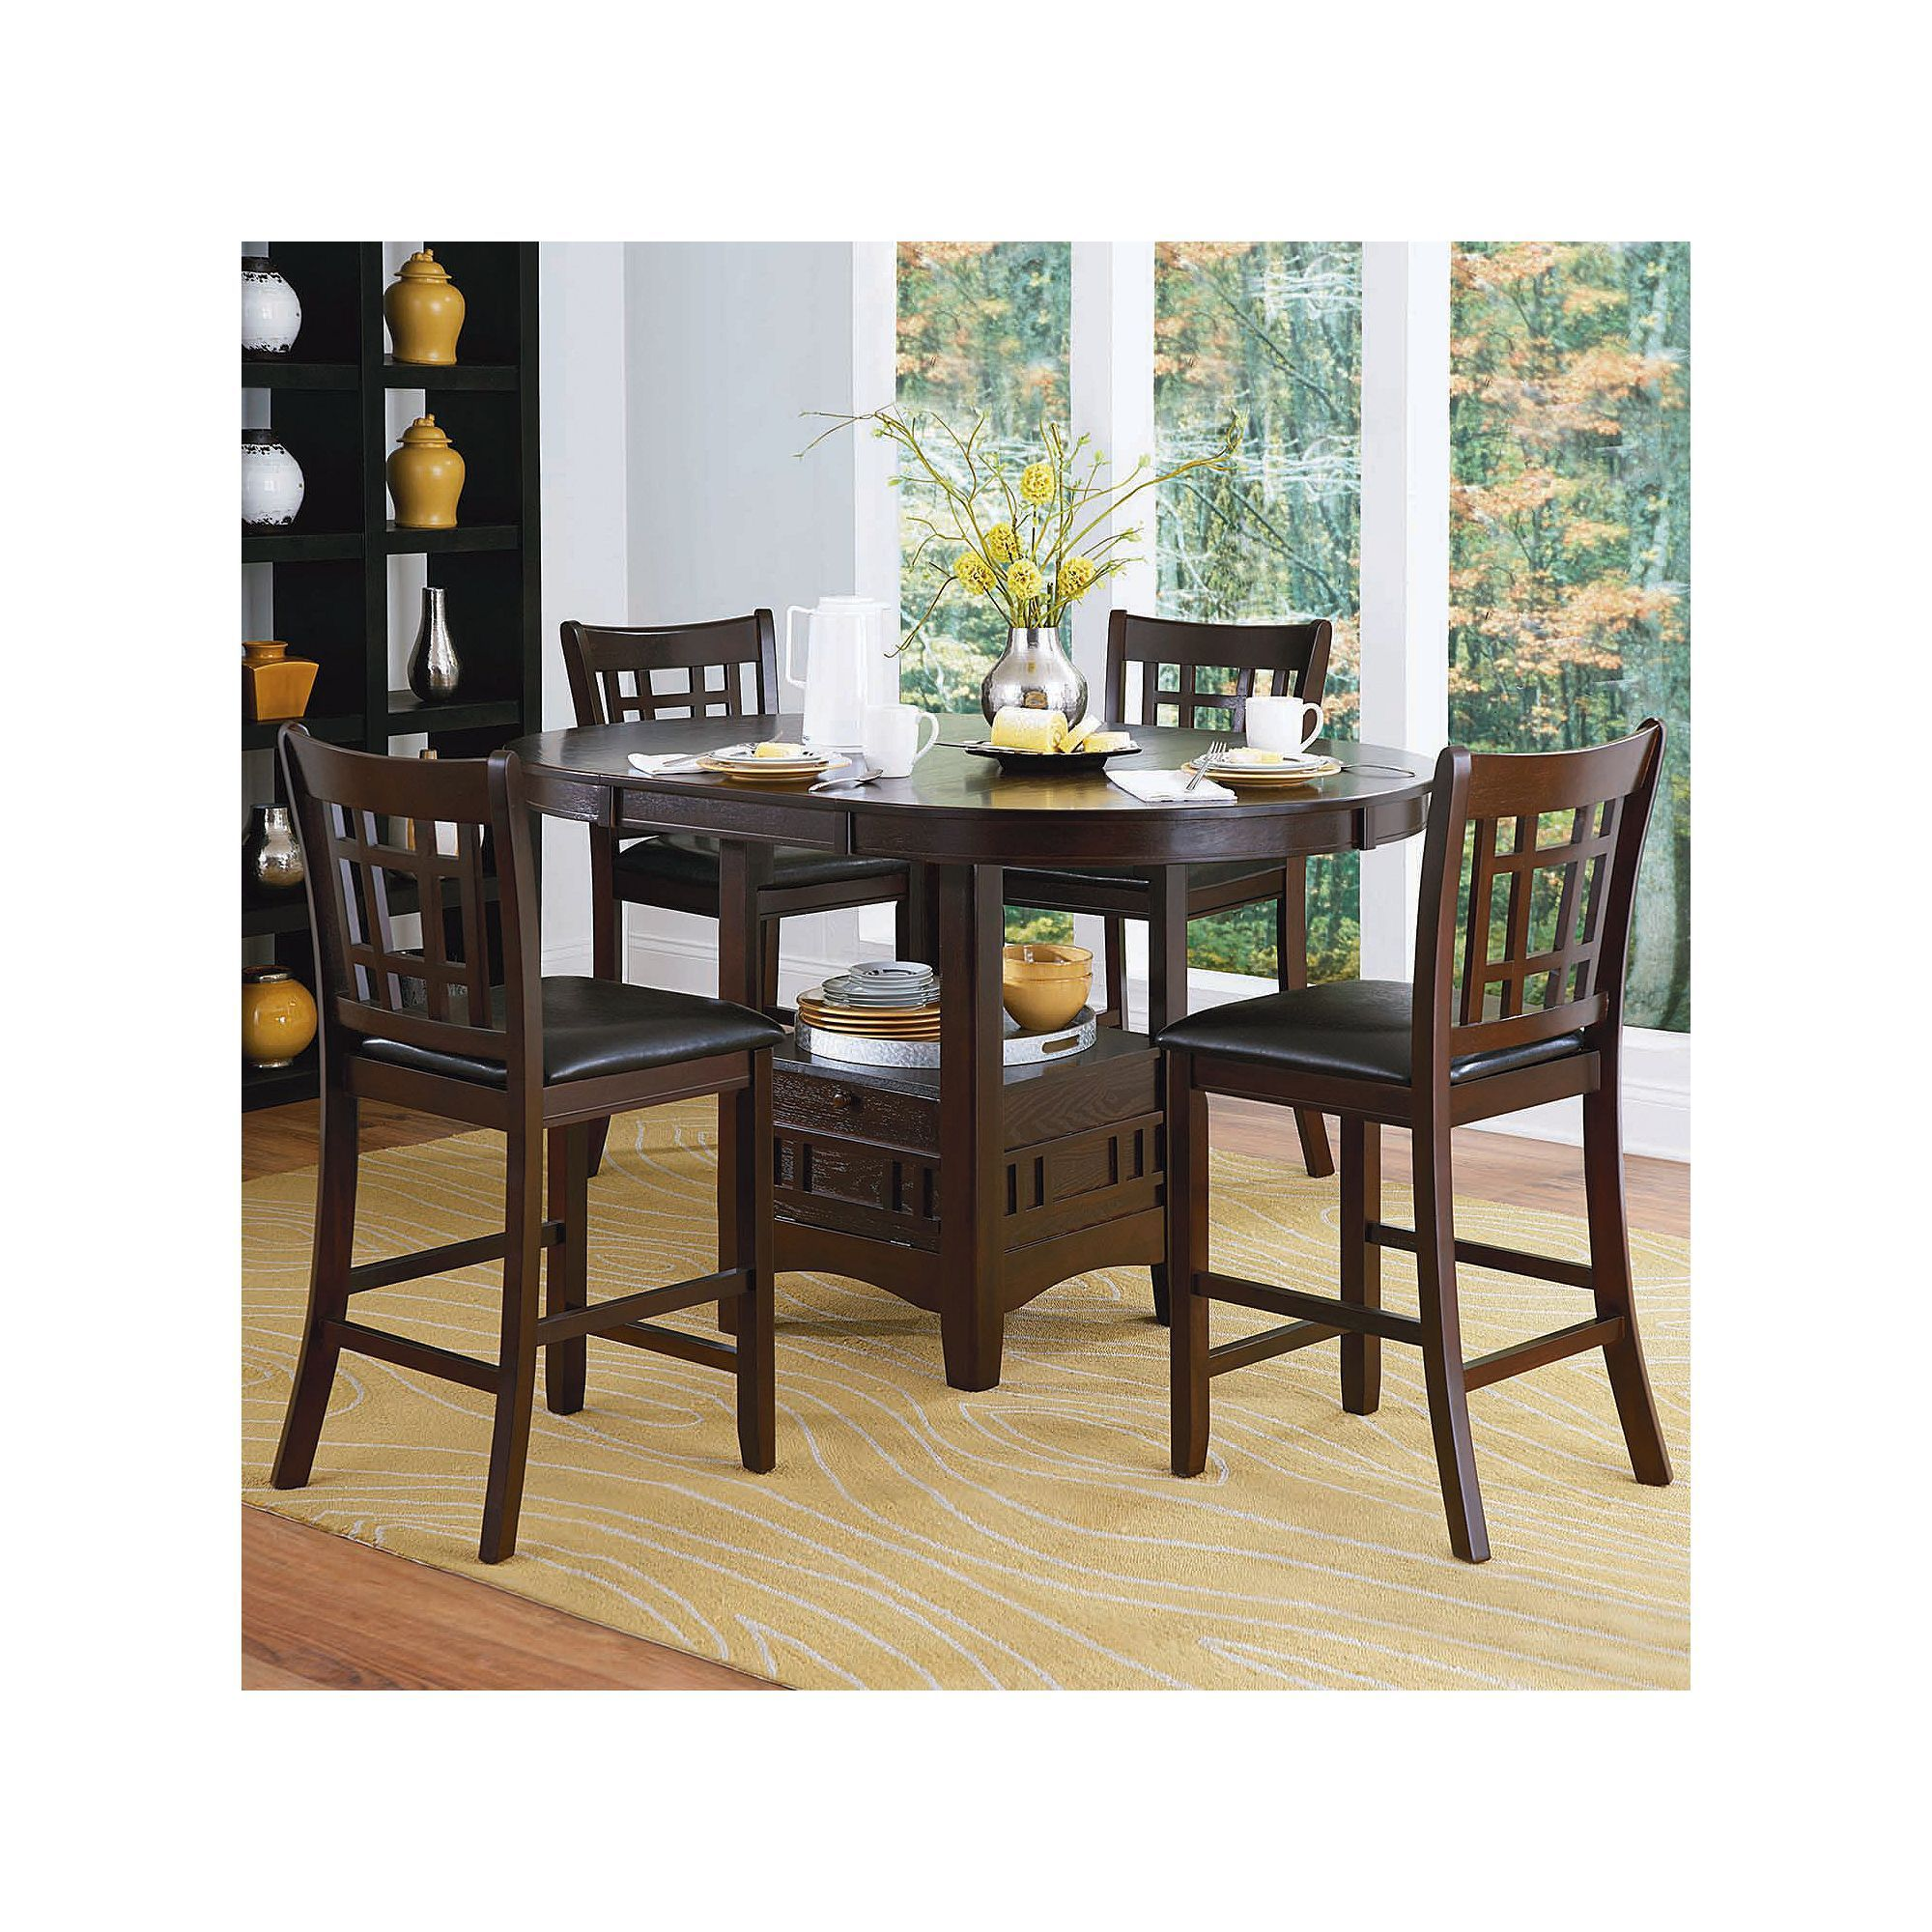 Bayberry dark cherry 44 inch round table with chairs - Homevance Verona 5 Piece Counter Height Dining Set Brown